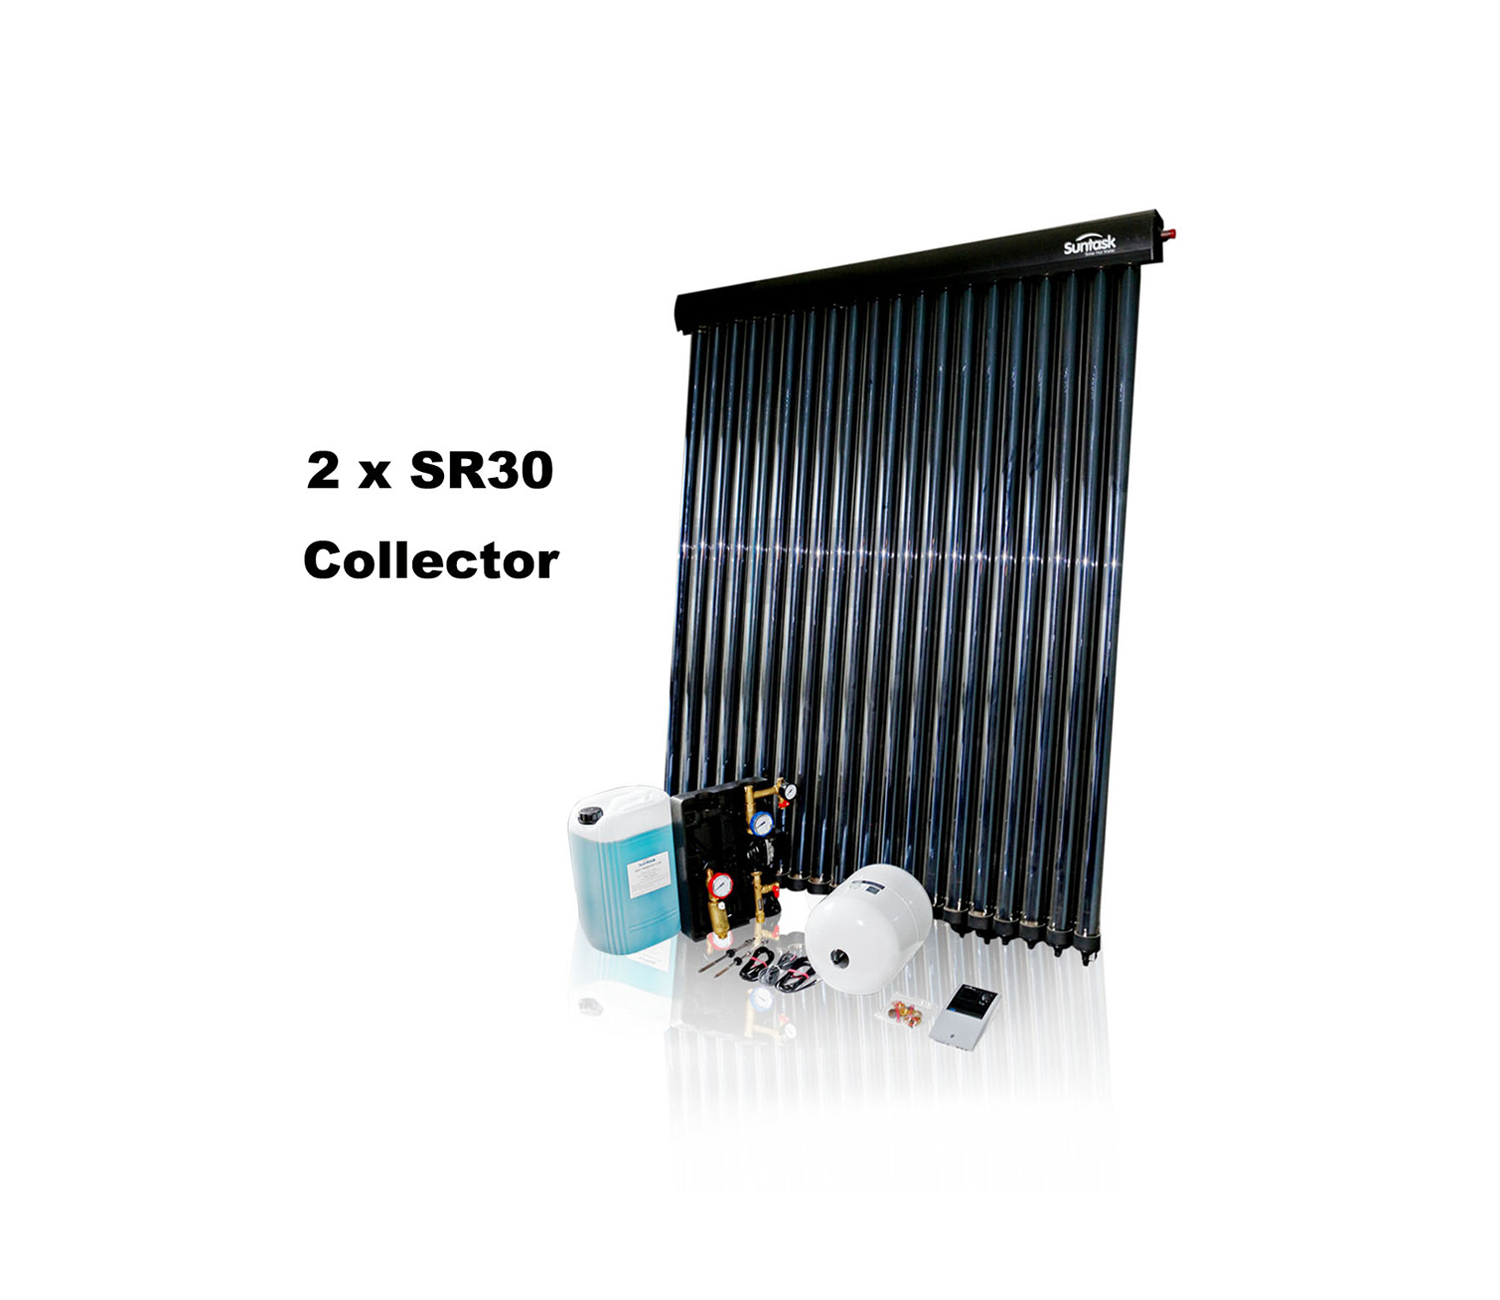 Suntask_full_Solar_Thermal_Kits_excluding_Cylinders_60_Tube_System_(2 x SR30_Collector).jpg